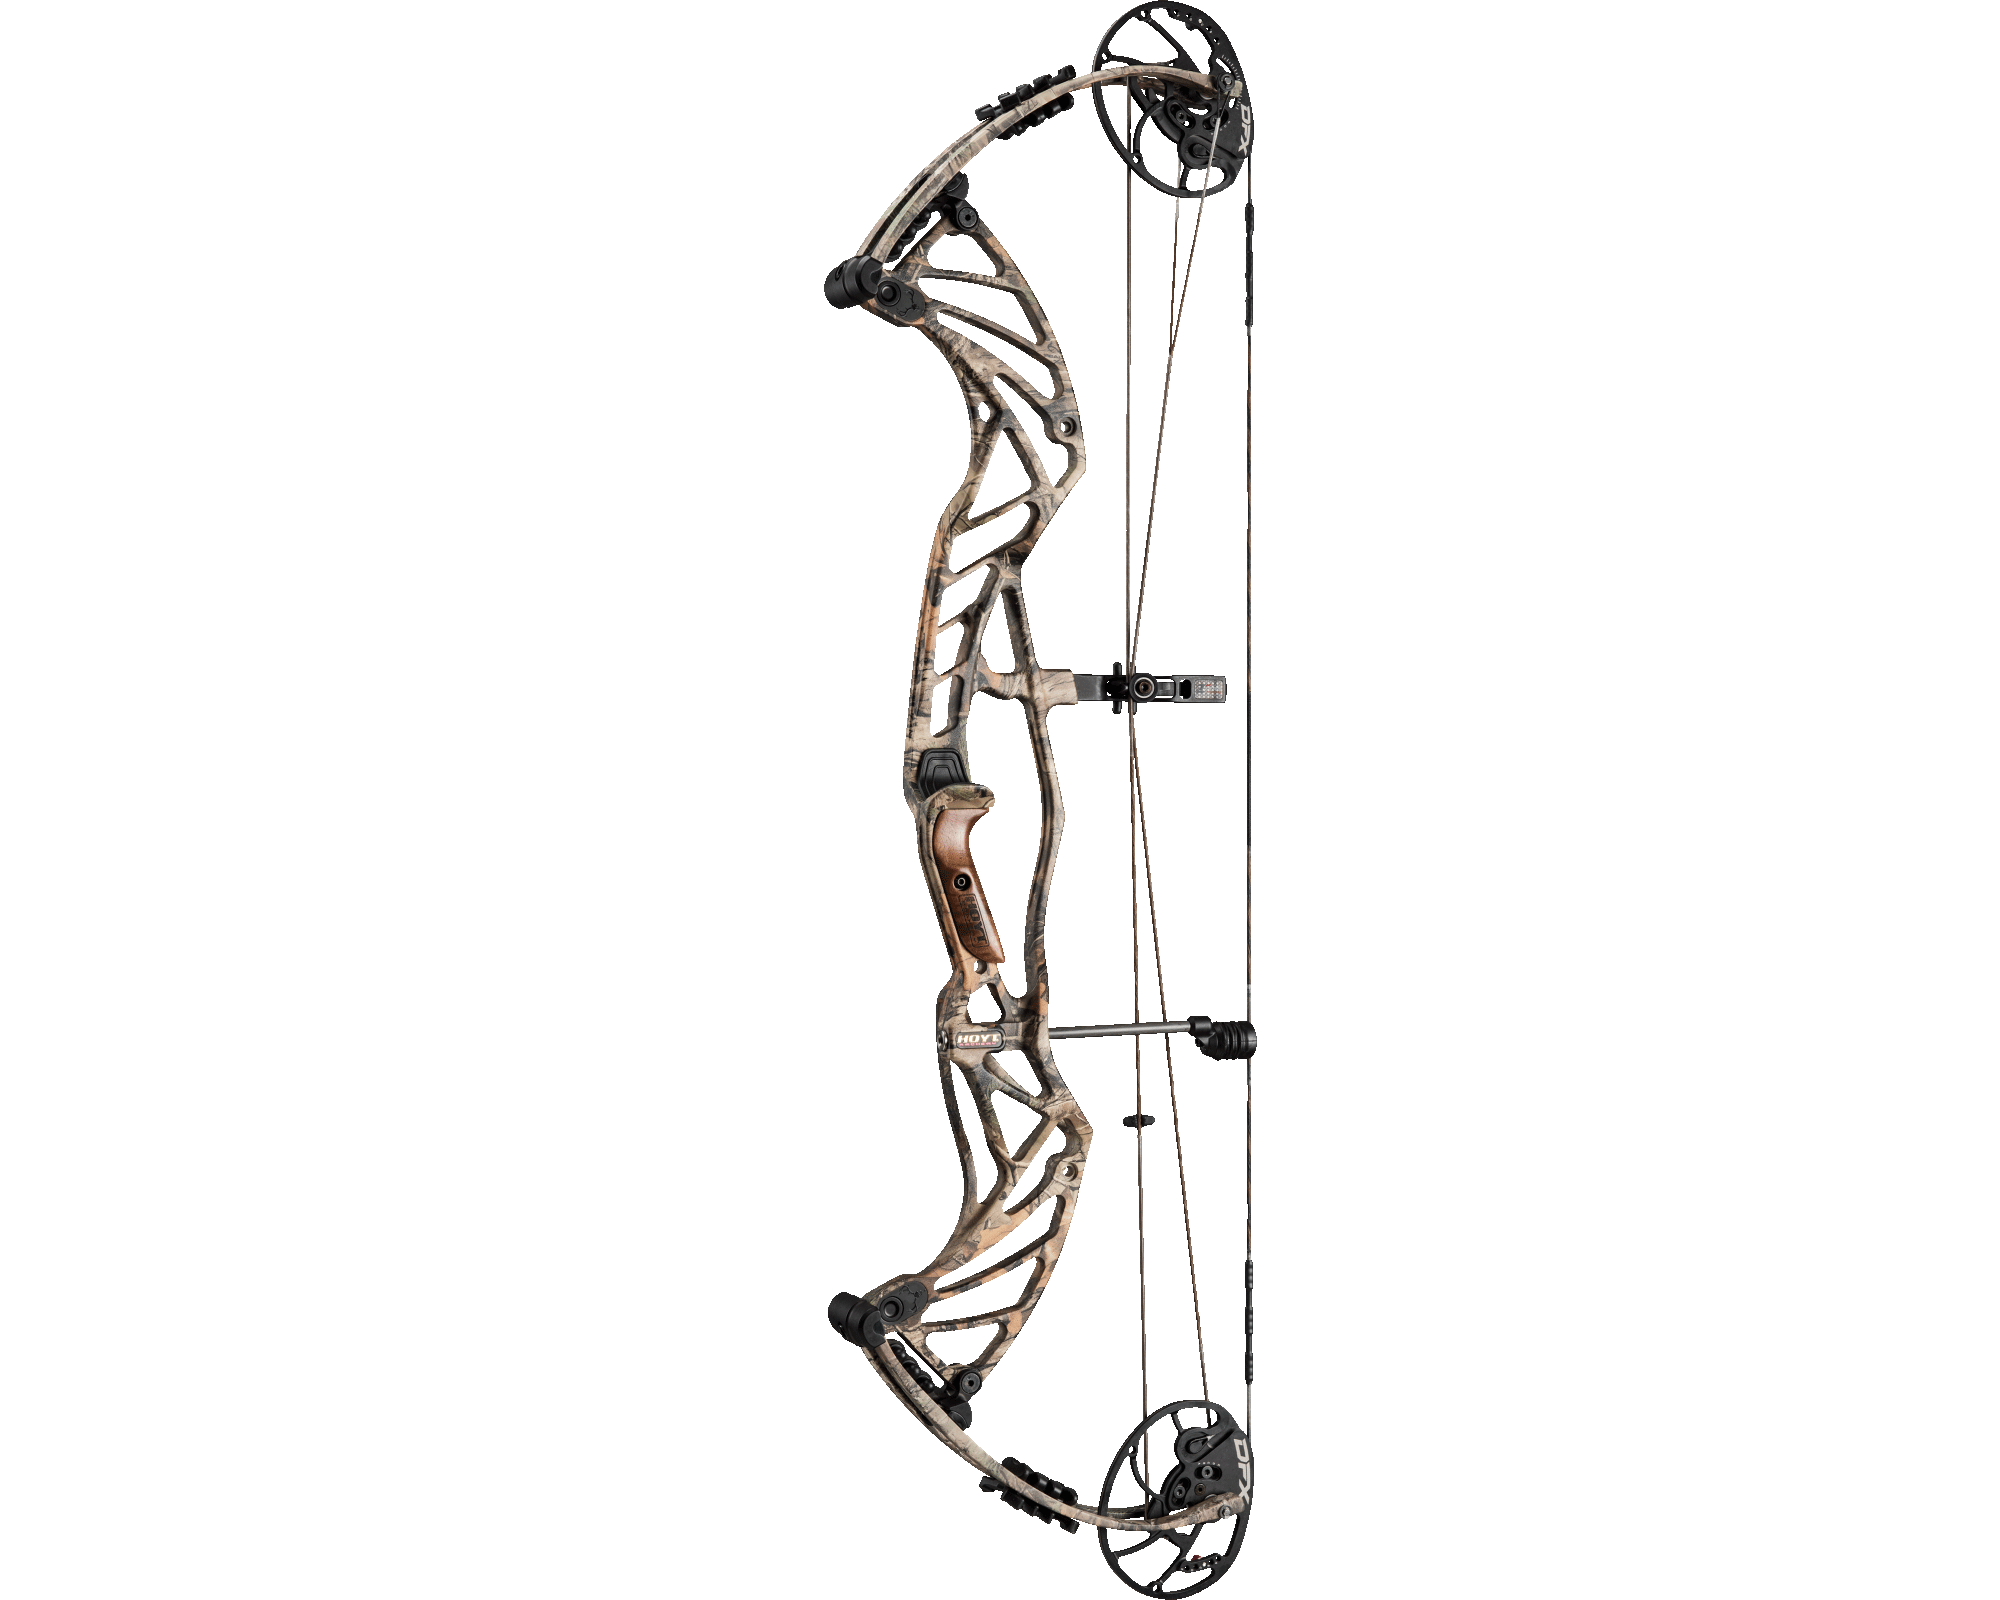 Best New Hunting Bows, Compounds   Outdoor Life